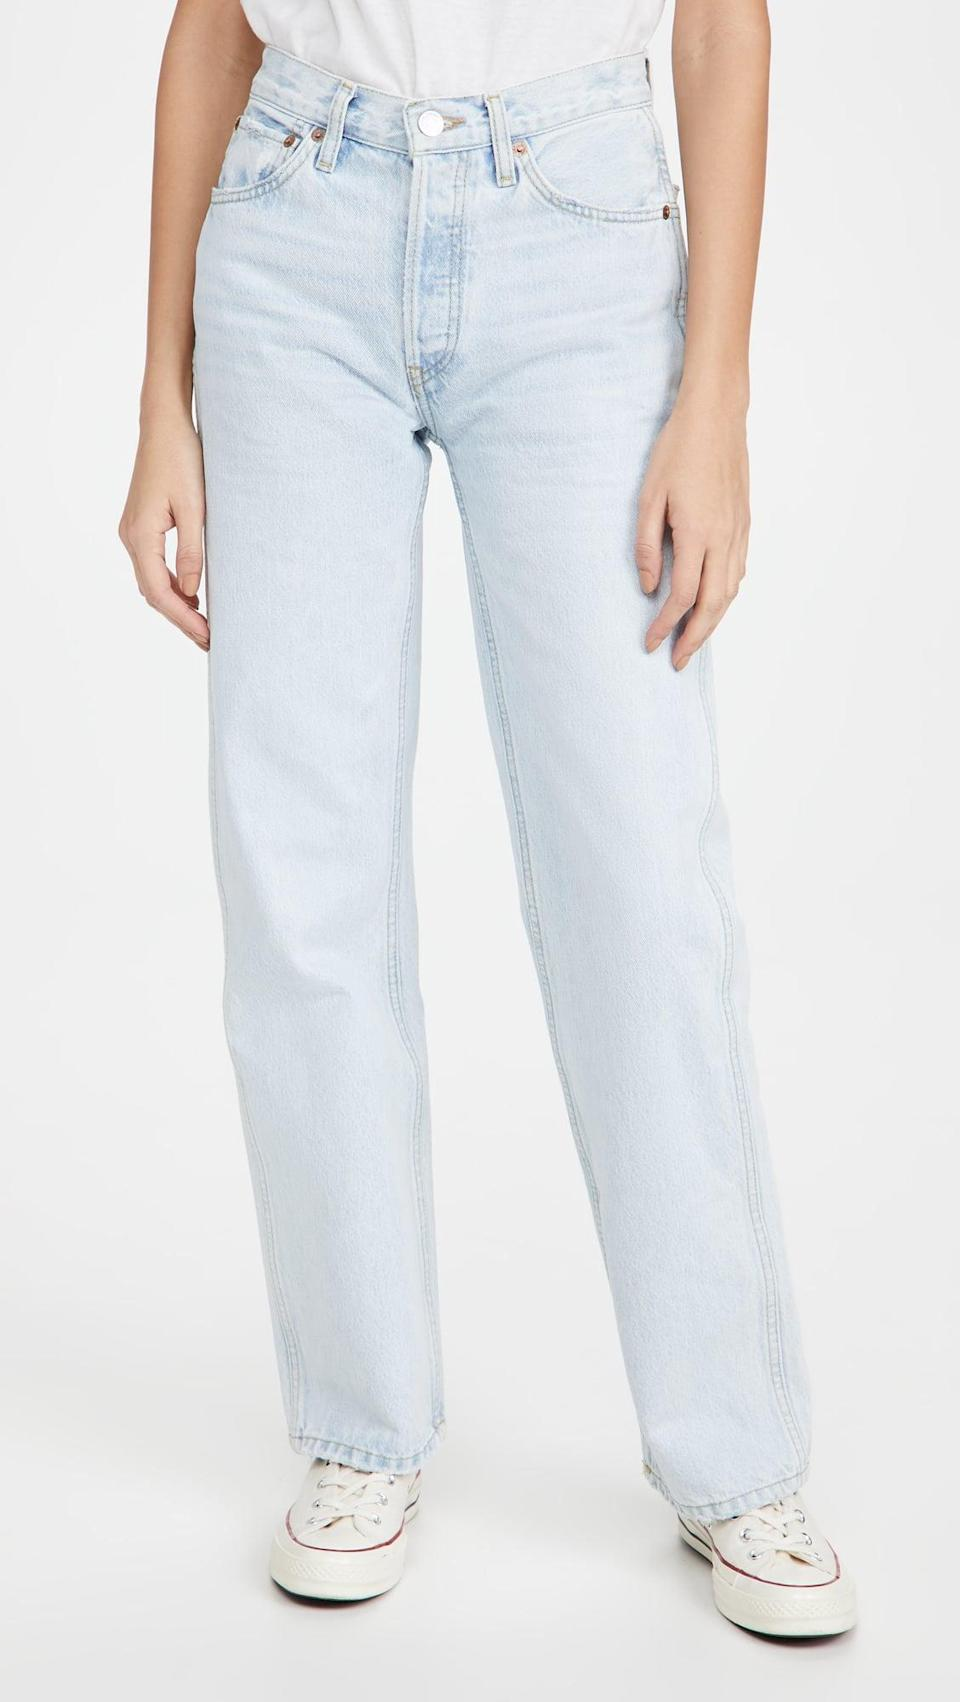 <p>These <span>RE/DONE High Rise Loose Jeans</span> ($212, originally $265) are awesome.</p>